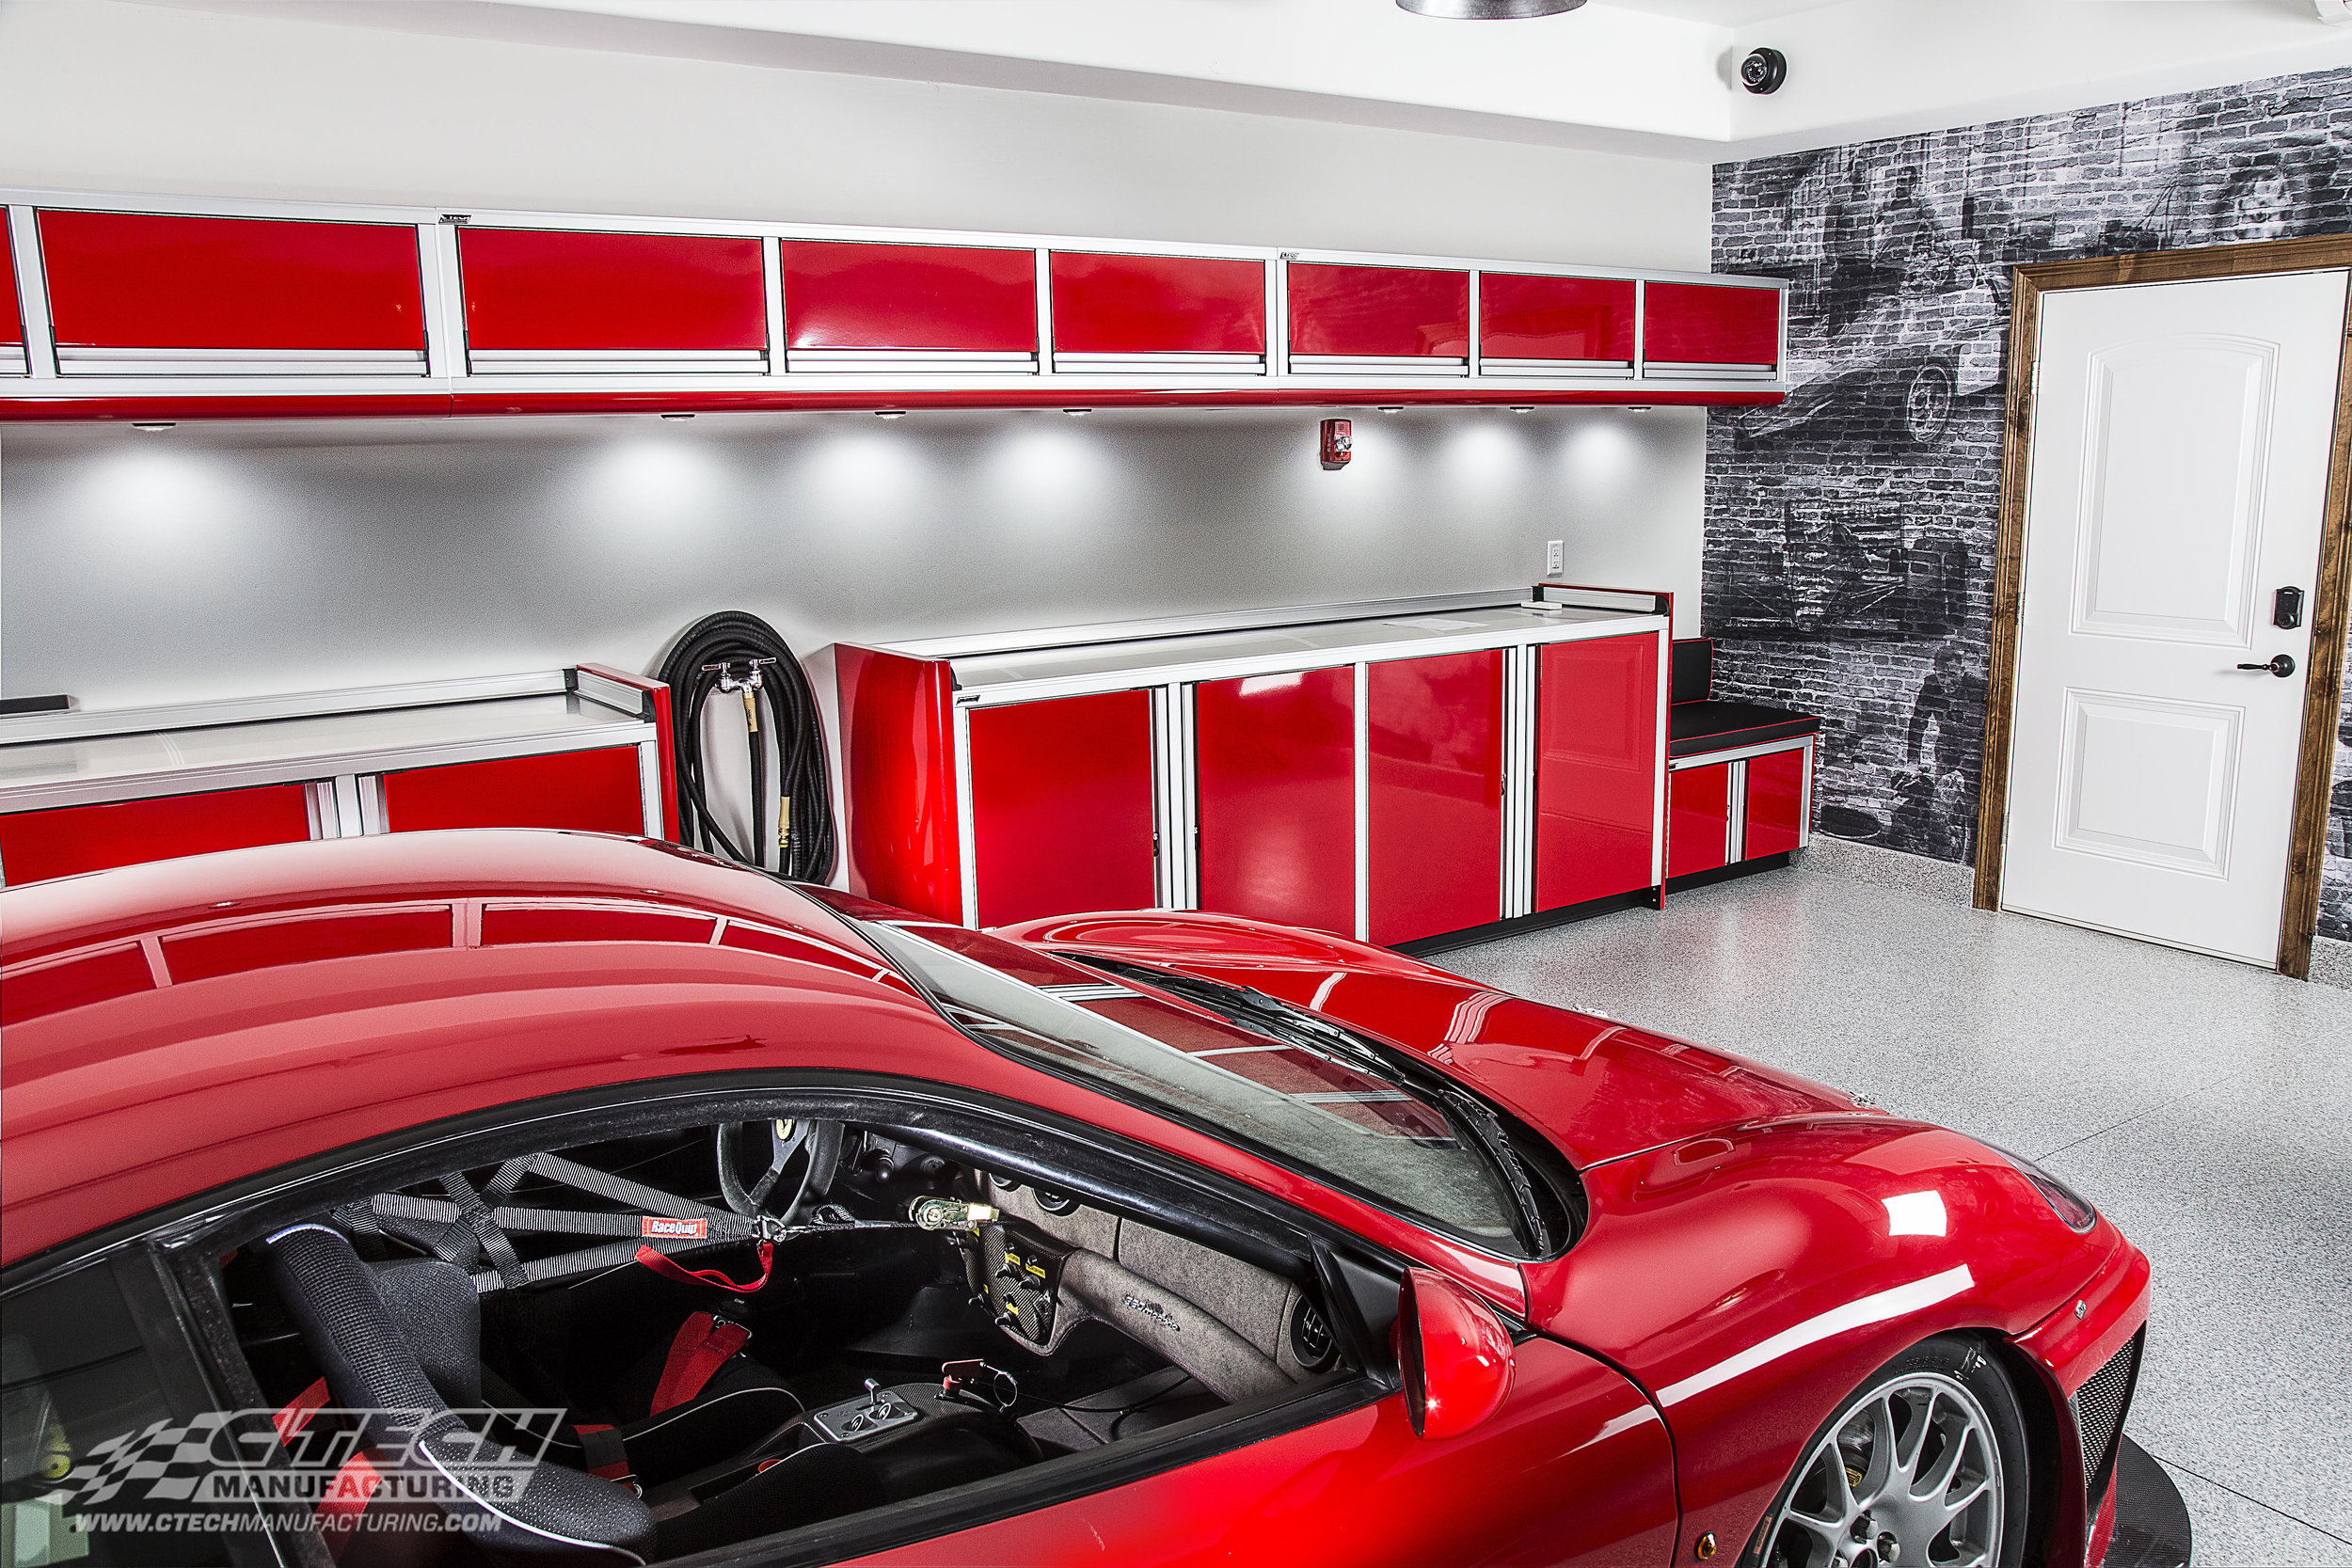 Ralph LaMacchia says that his CTECH Cabinet setup is getting more compliments than his Ferrari! CTECH knows that aesthetics matter to car enthusiasts, and we make sure that all of our innovative storage features are compatible with our superior aesthetics. BOM 39293